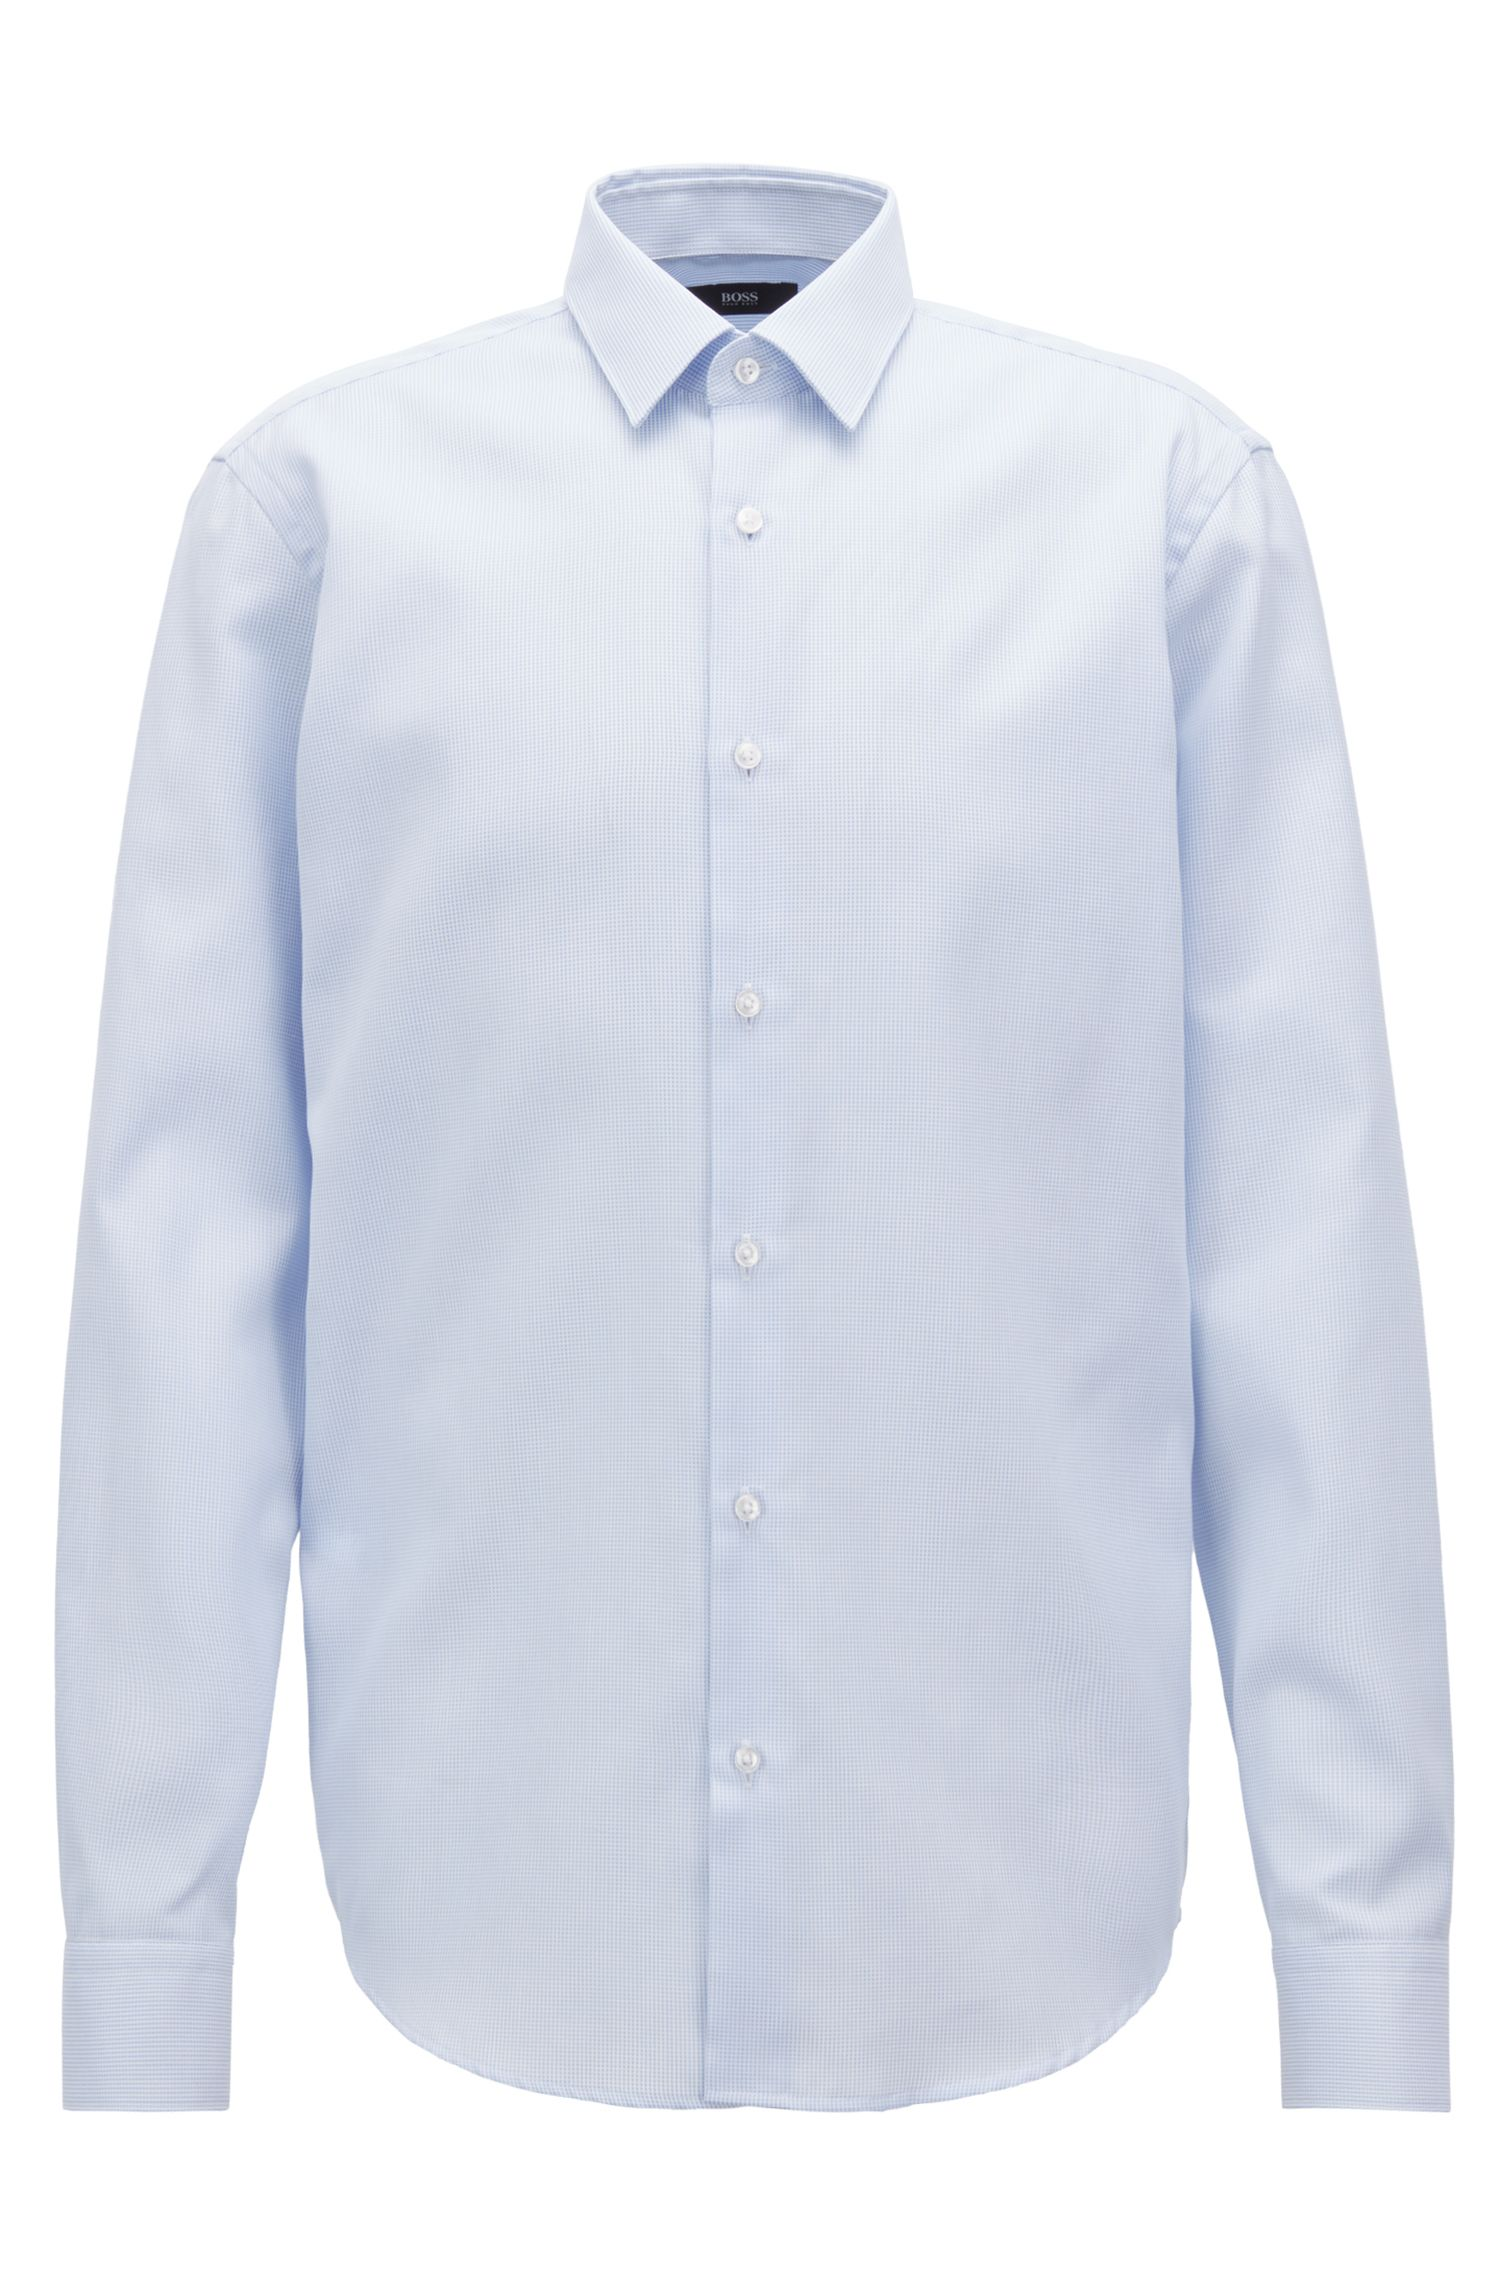 Swiss-cotton shirt with aloe vera treatment, Light Blue